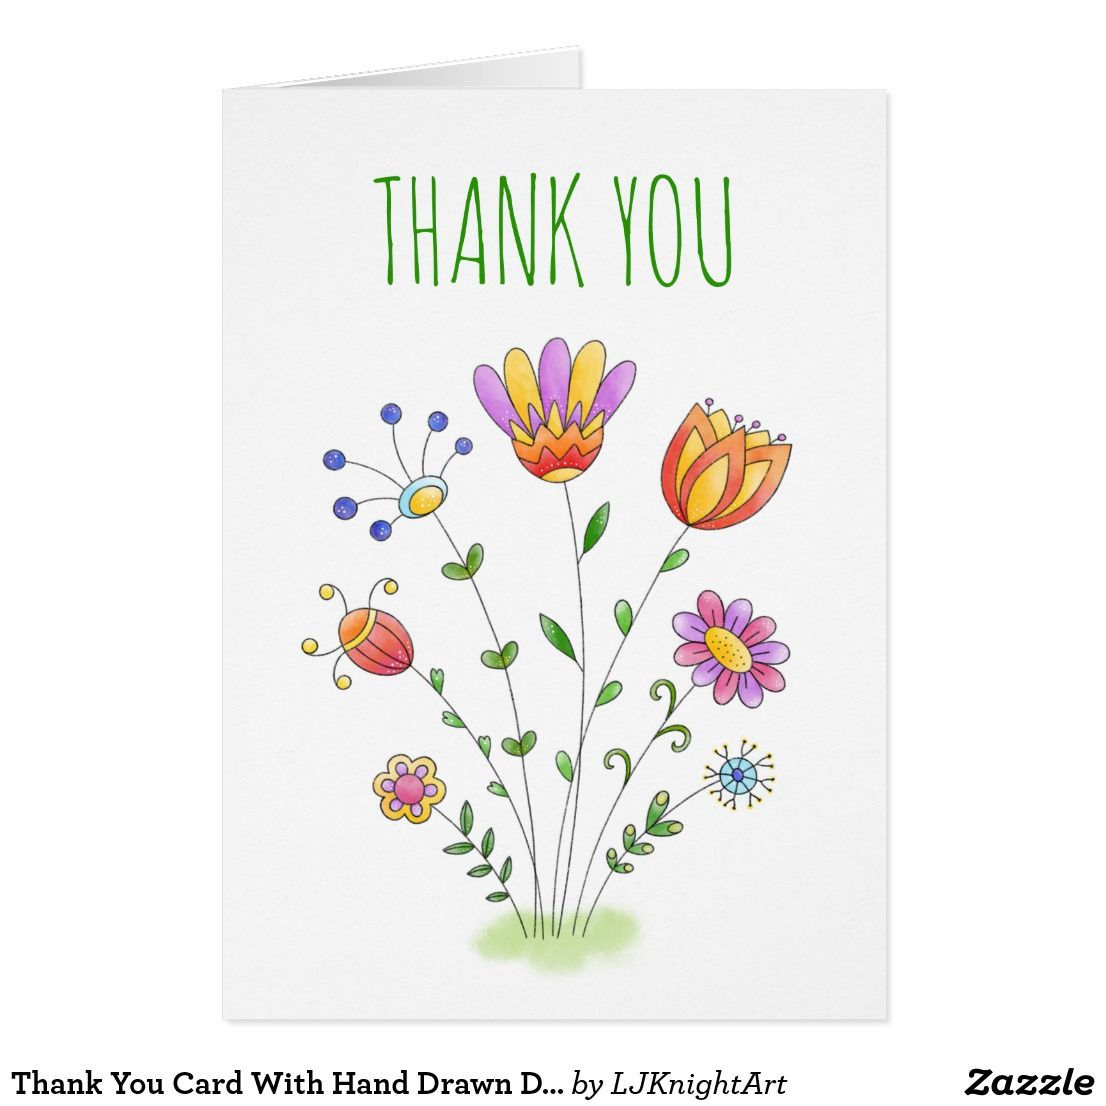 Thank You Card With Hand Drawn Doodle Flowers Zazzle Com With